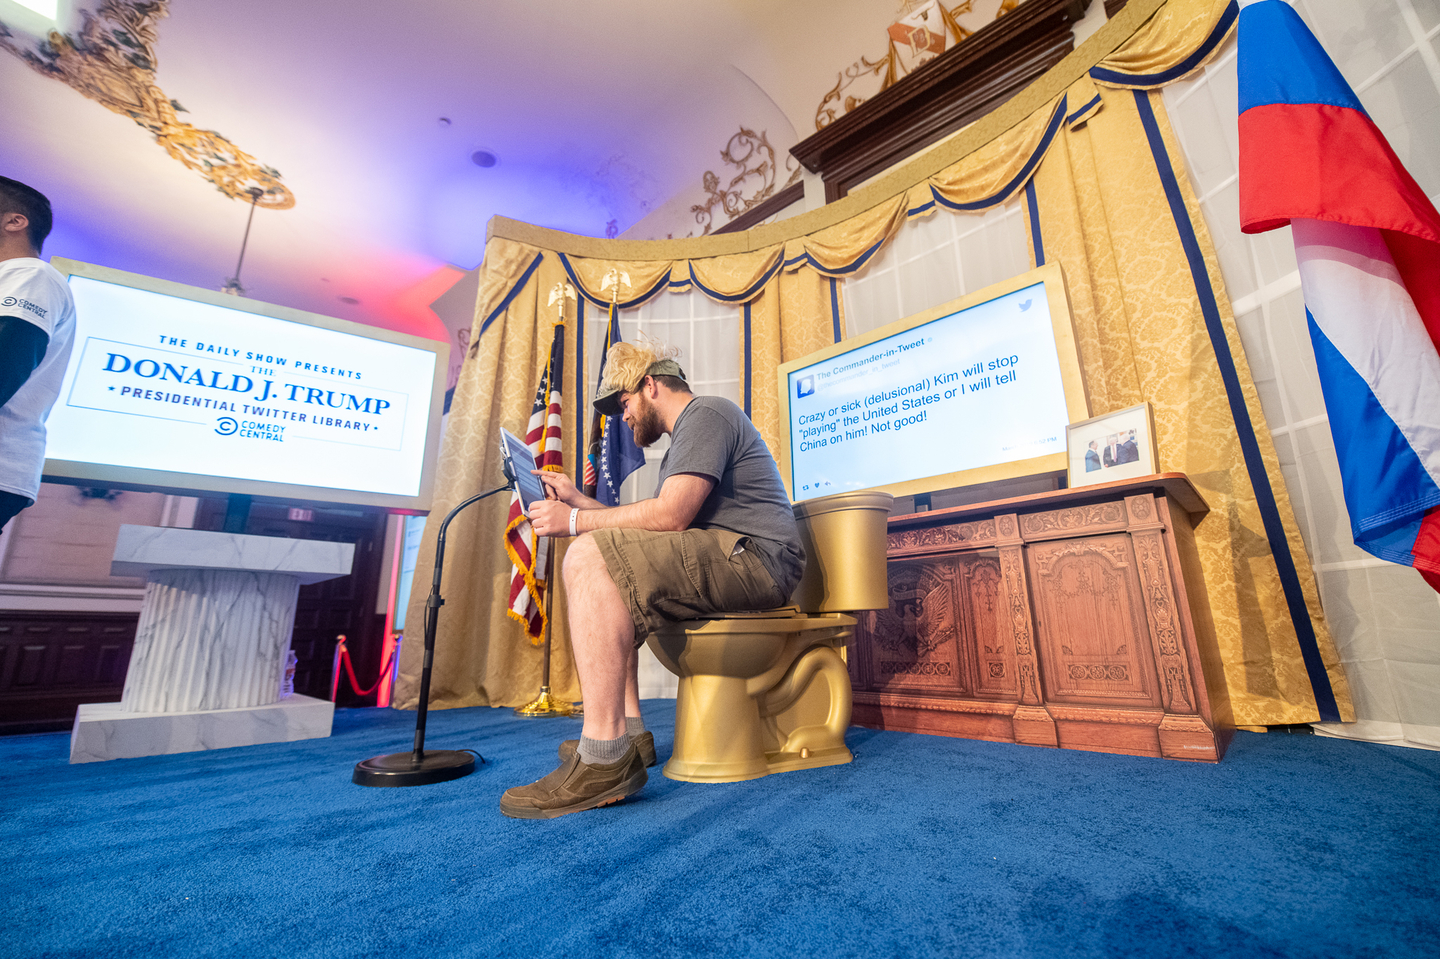 Presented by The Daily Show with Trevor Noah, stop by The Driskill Hotel to explore The Donald J. Trump Presidential Twitter Library.